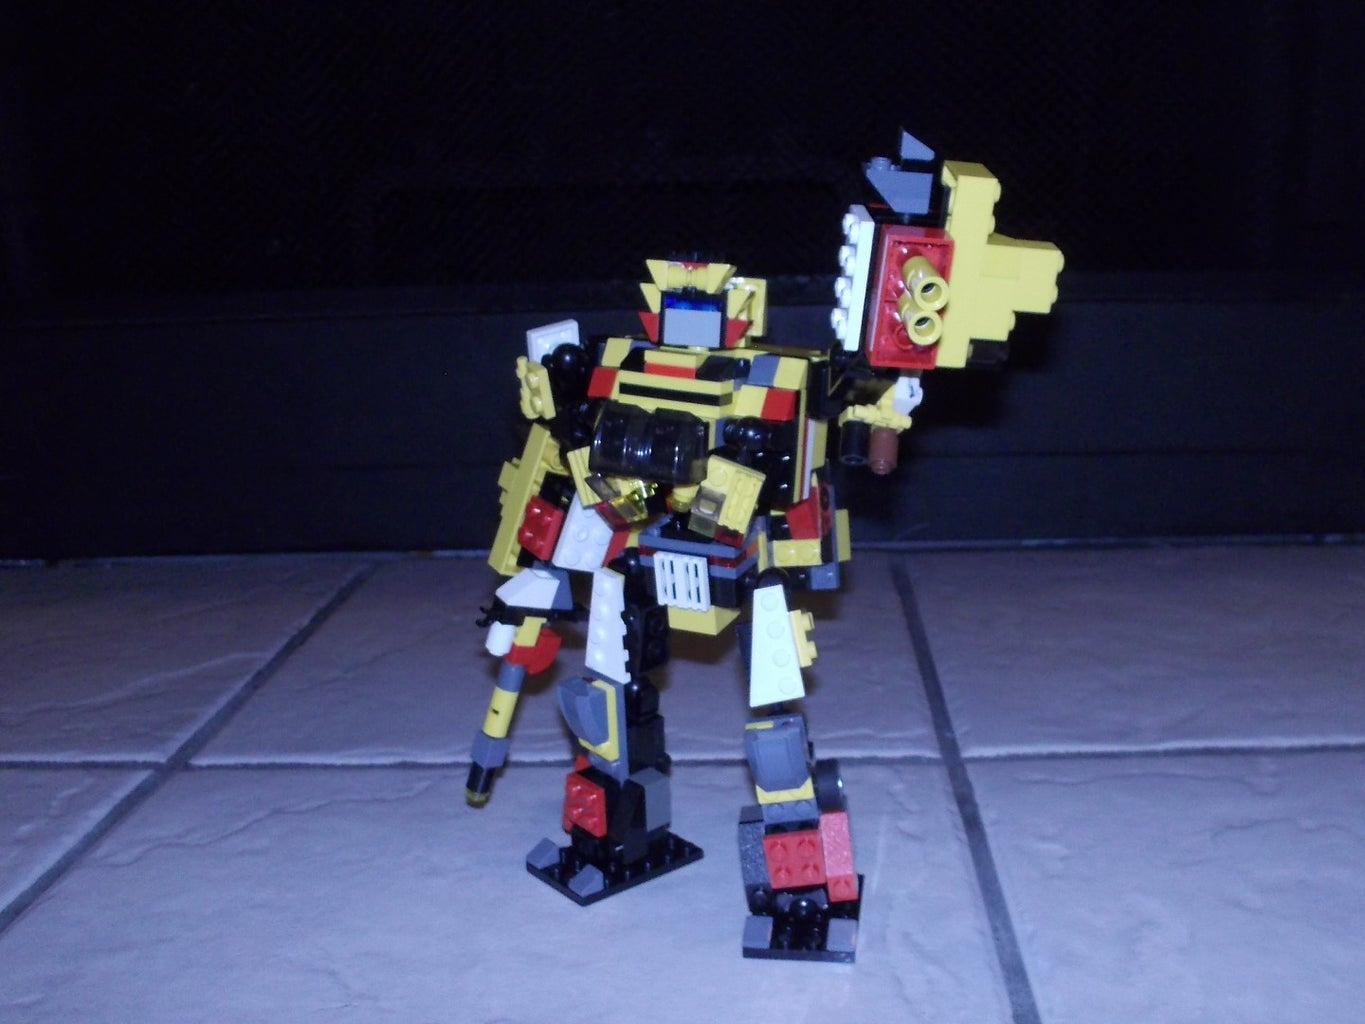 Lego Transformers: Rodimus Prime (WITH VIDEO!)